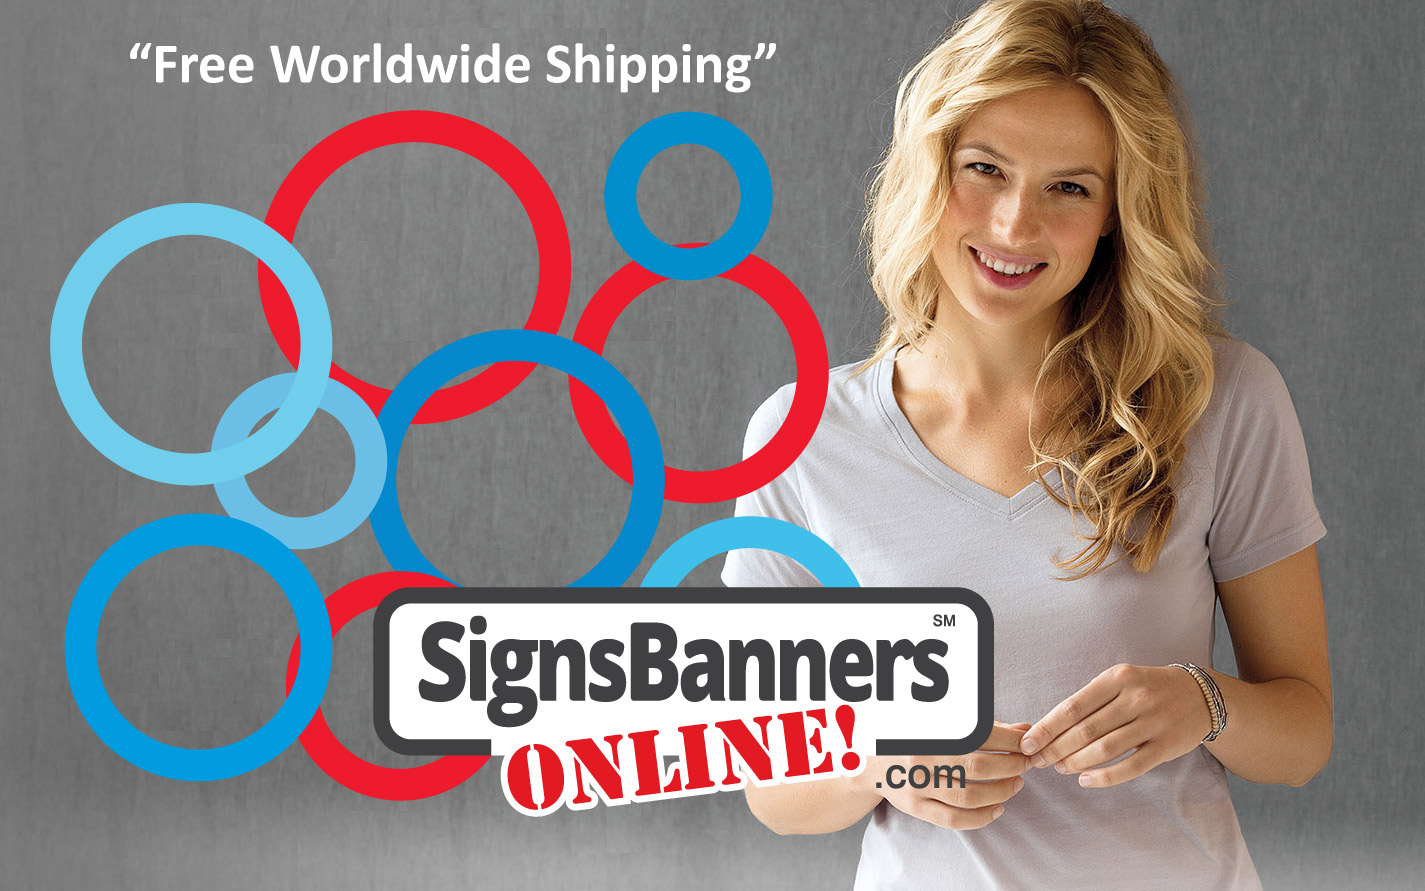 Free shipping worldwide makes it easy with Signs Banners Online